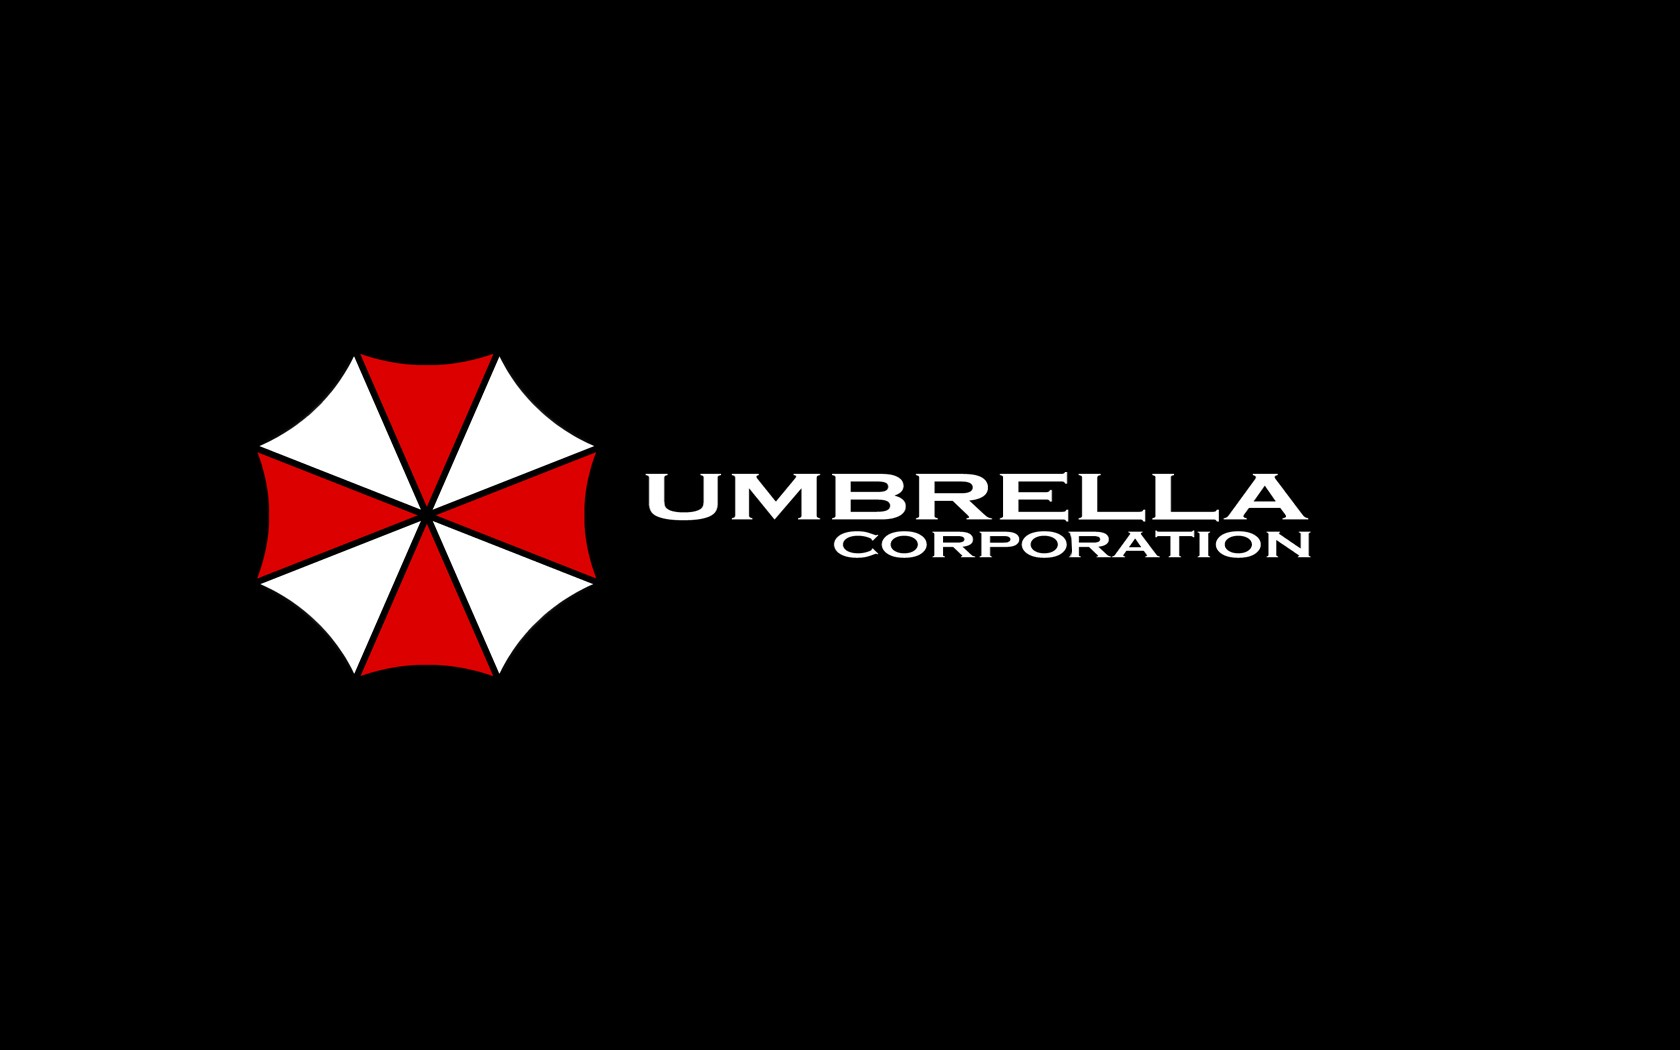 Umbrella Corporation to Reopen, Bring Jobs to the USA